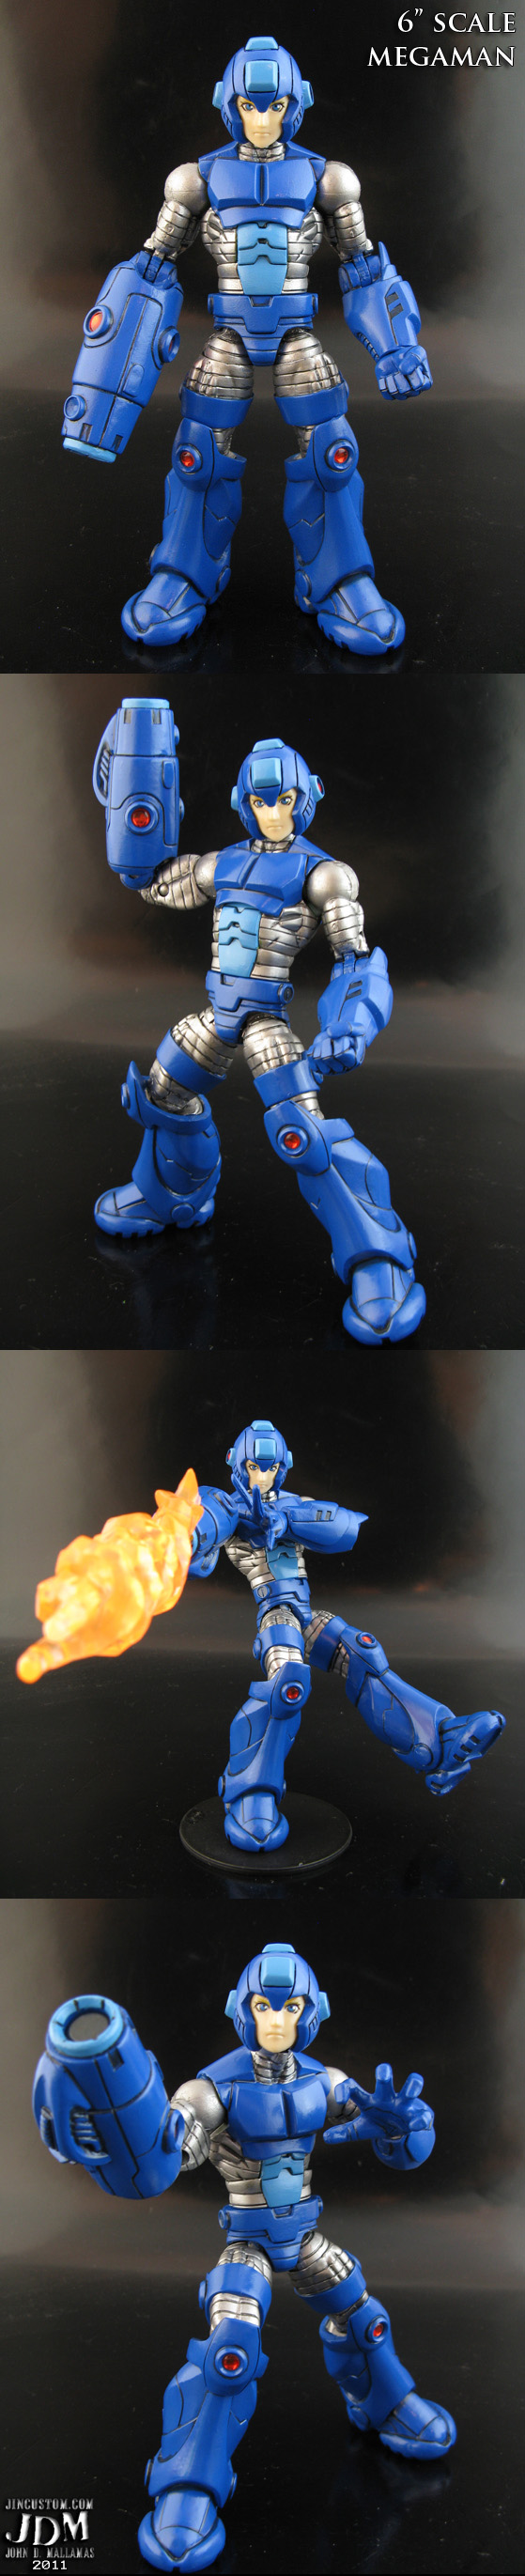 Megaman Marvel Legends